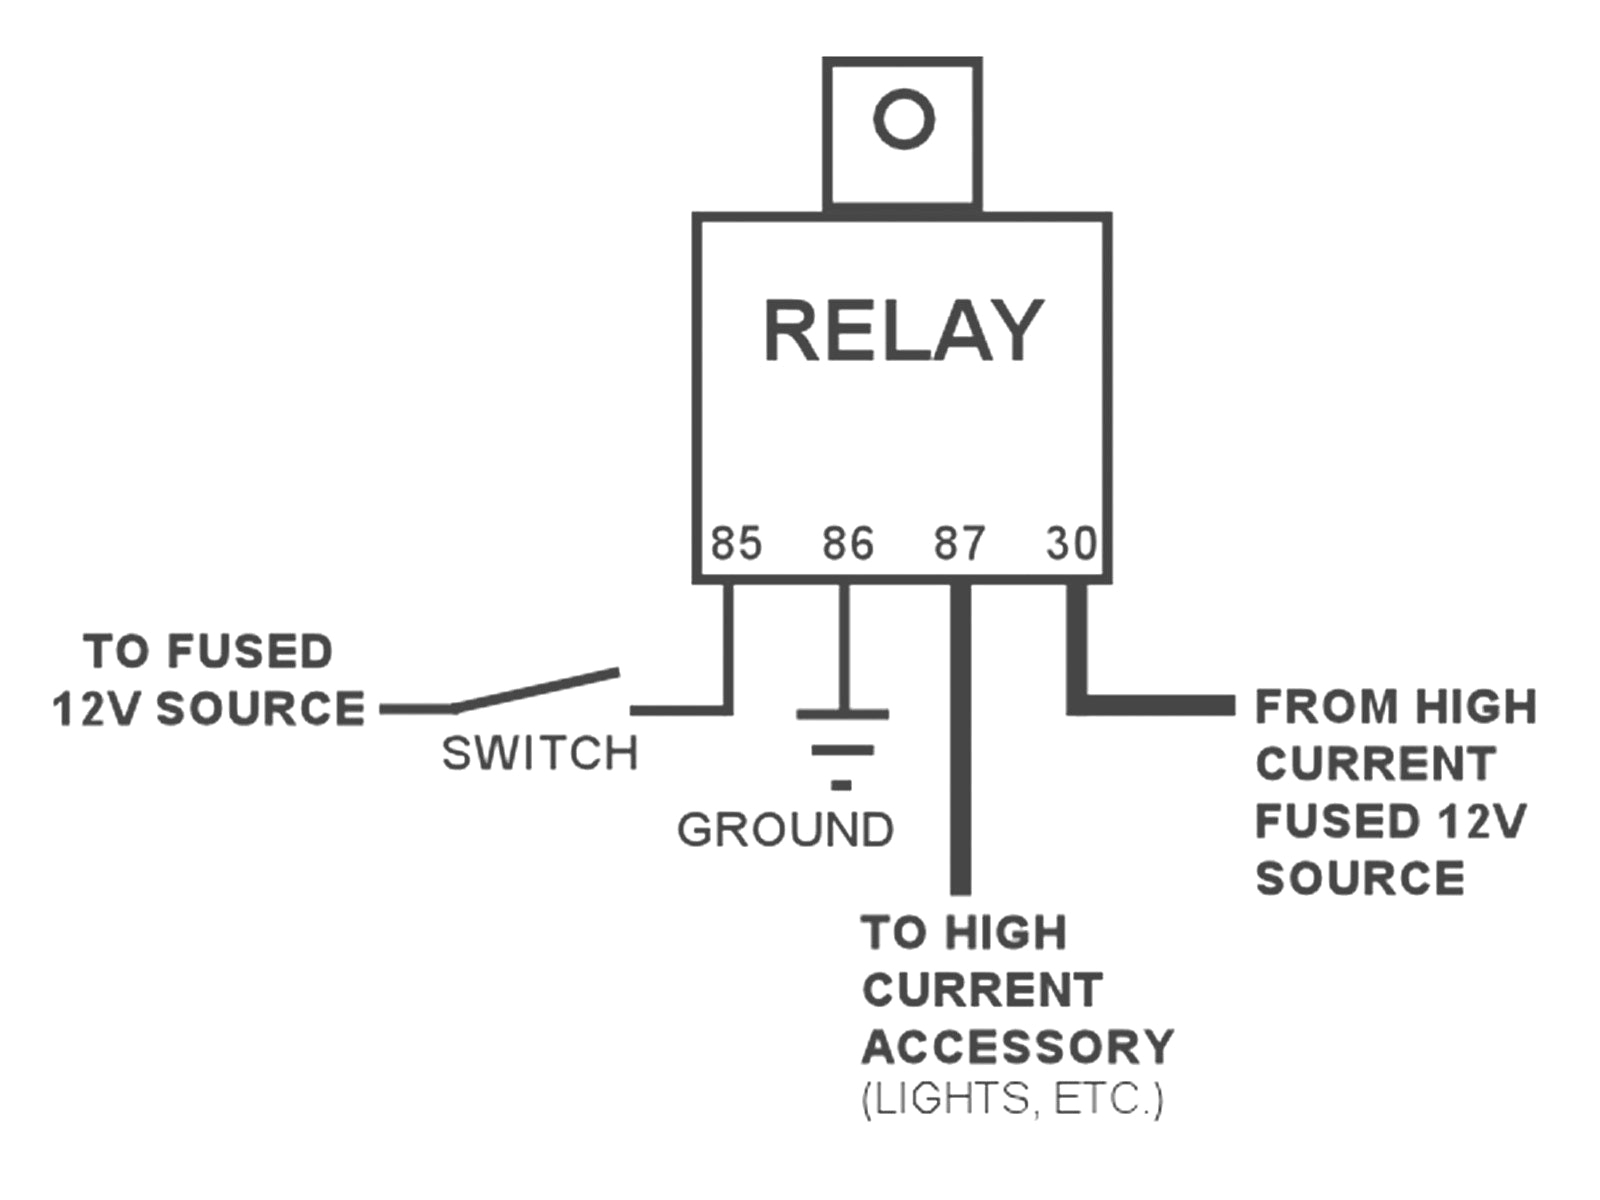 4 wire relay diagram wiring diagram 4 pin relay wiring diagram spotlights 4 wire relay diagram